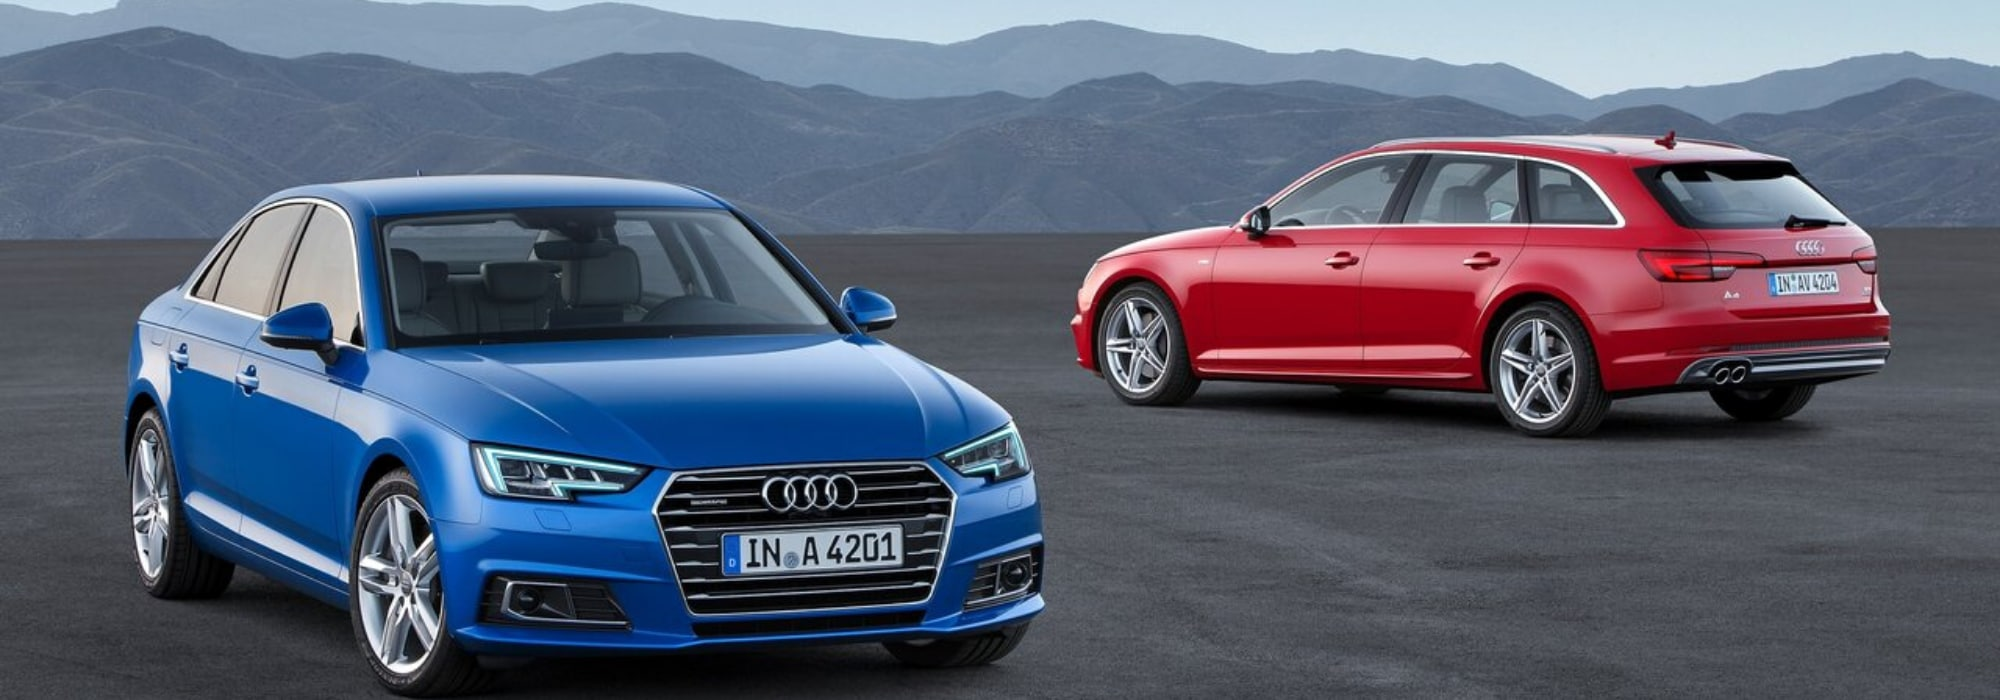 Used Audi Cars for Sale in Colorado Springs